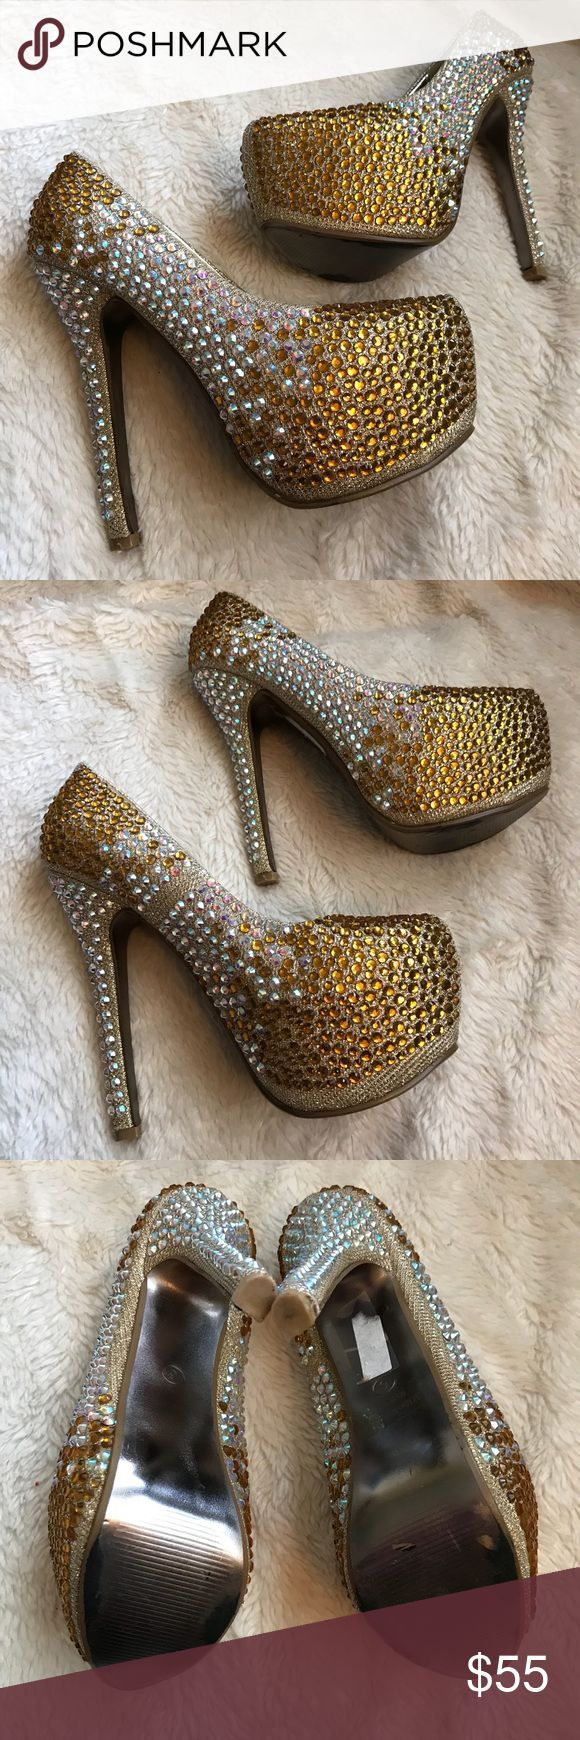 BELLA LUNA 💎 Sparkling✨PLATFORM HEELS Gorgeous Bella Luna crystal platform heels size 6 in great condition! Worn once. One or two small crystals missing on inner R heel as seen in picture but hardly noticeable and on inside of foot. bella luna Shoes Platforms